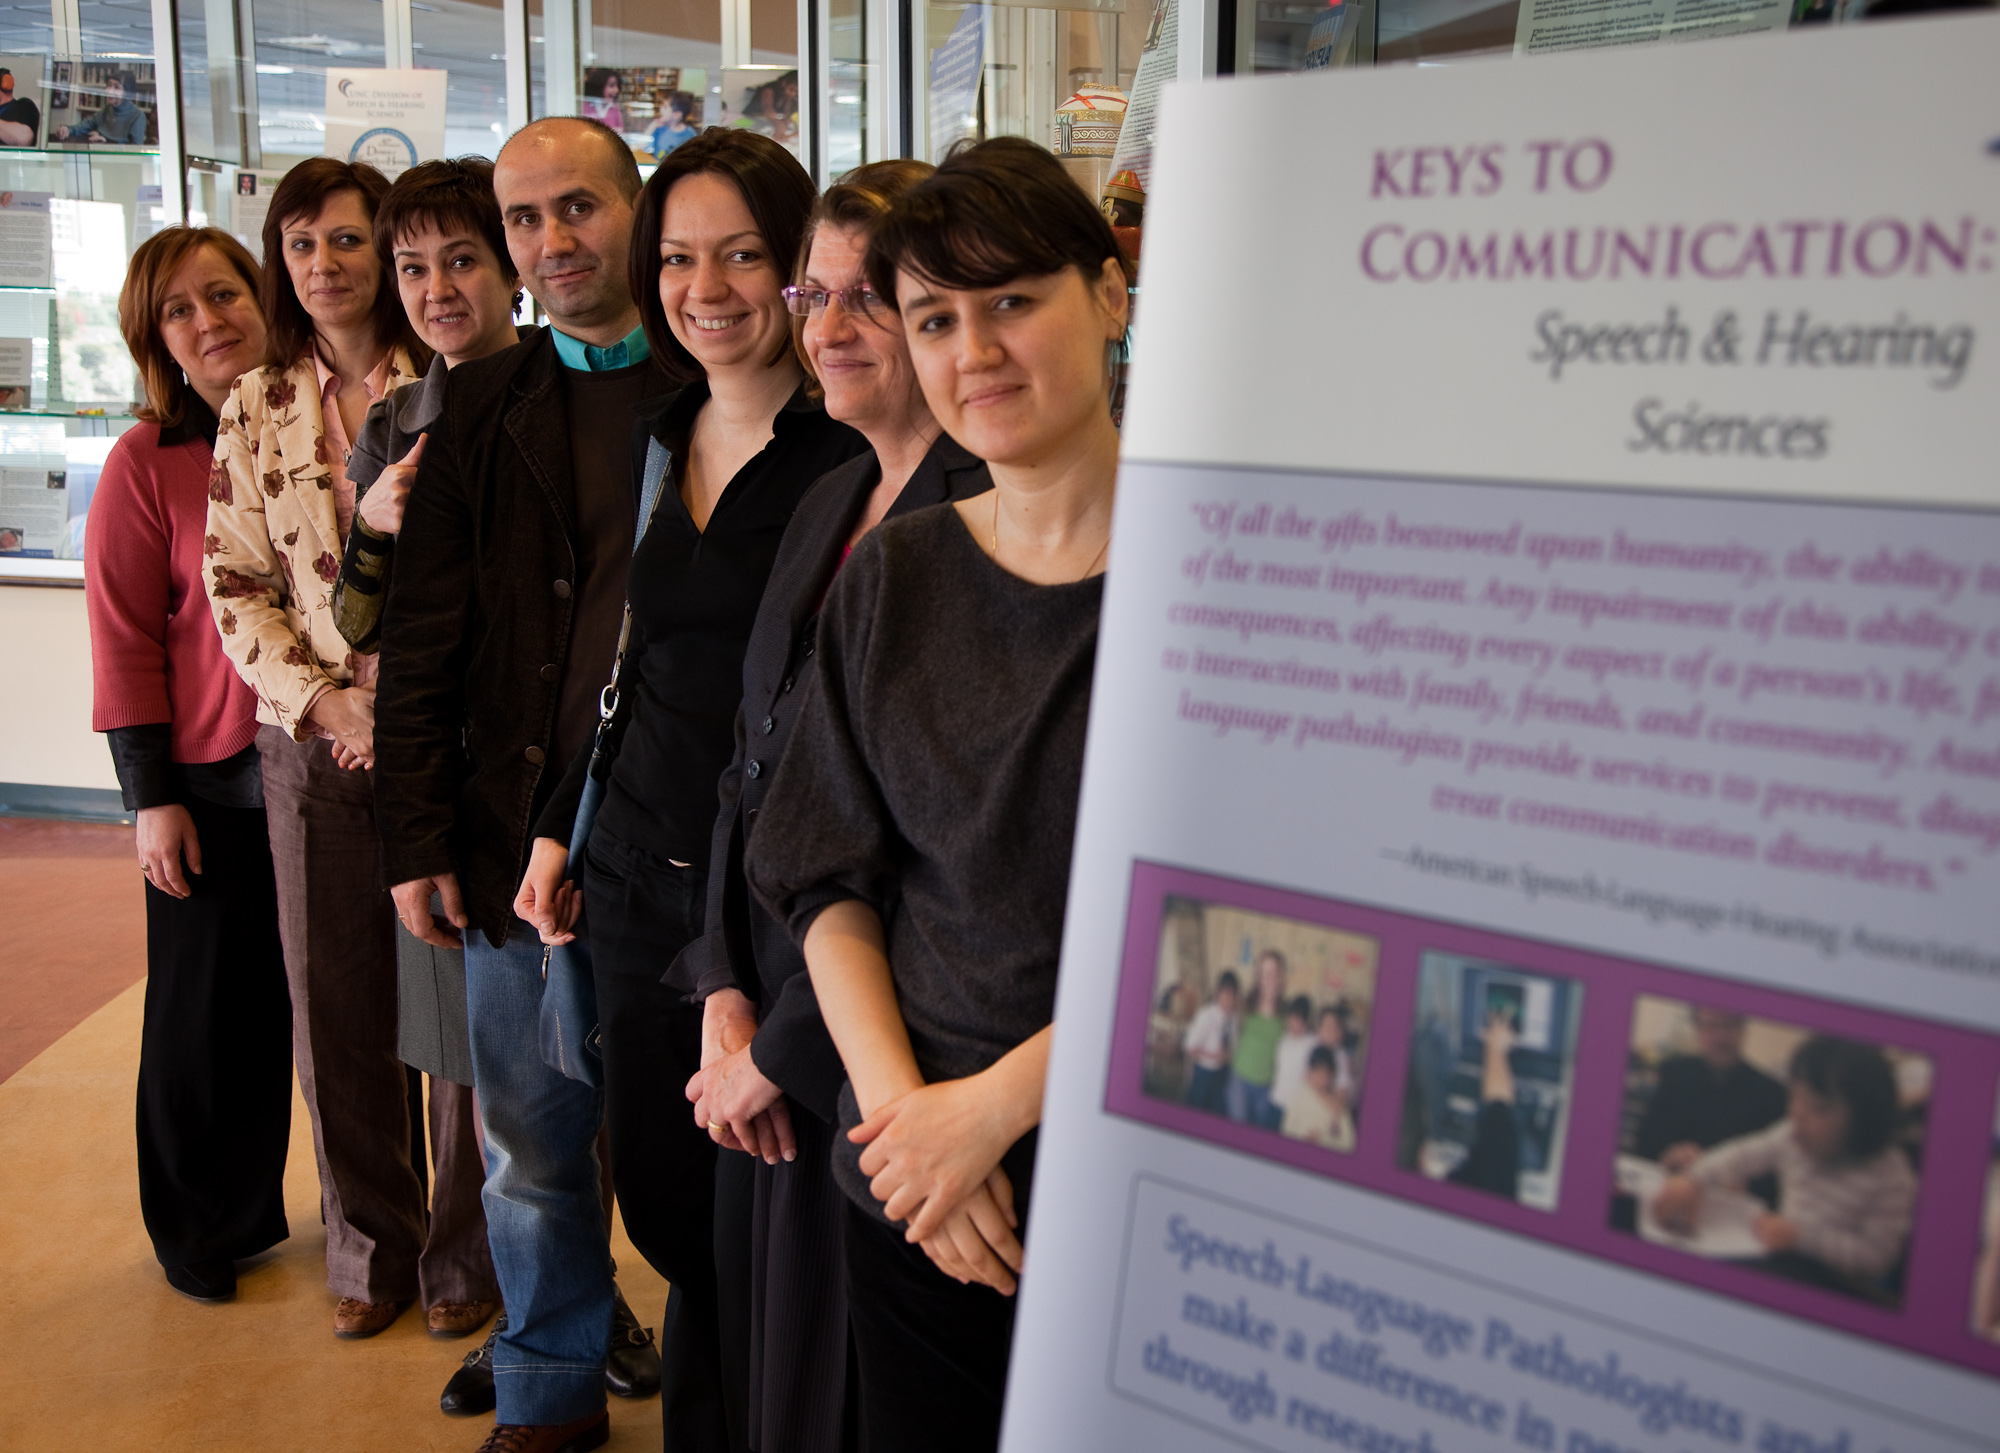 International Visitors at the Keys to Communication Exhibit Celebrating Speech and Hearing Sciences 40th Anniversary photo March through October 2010